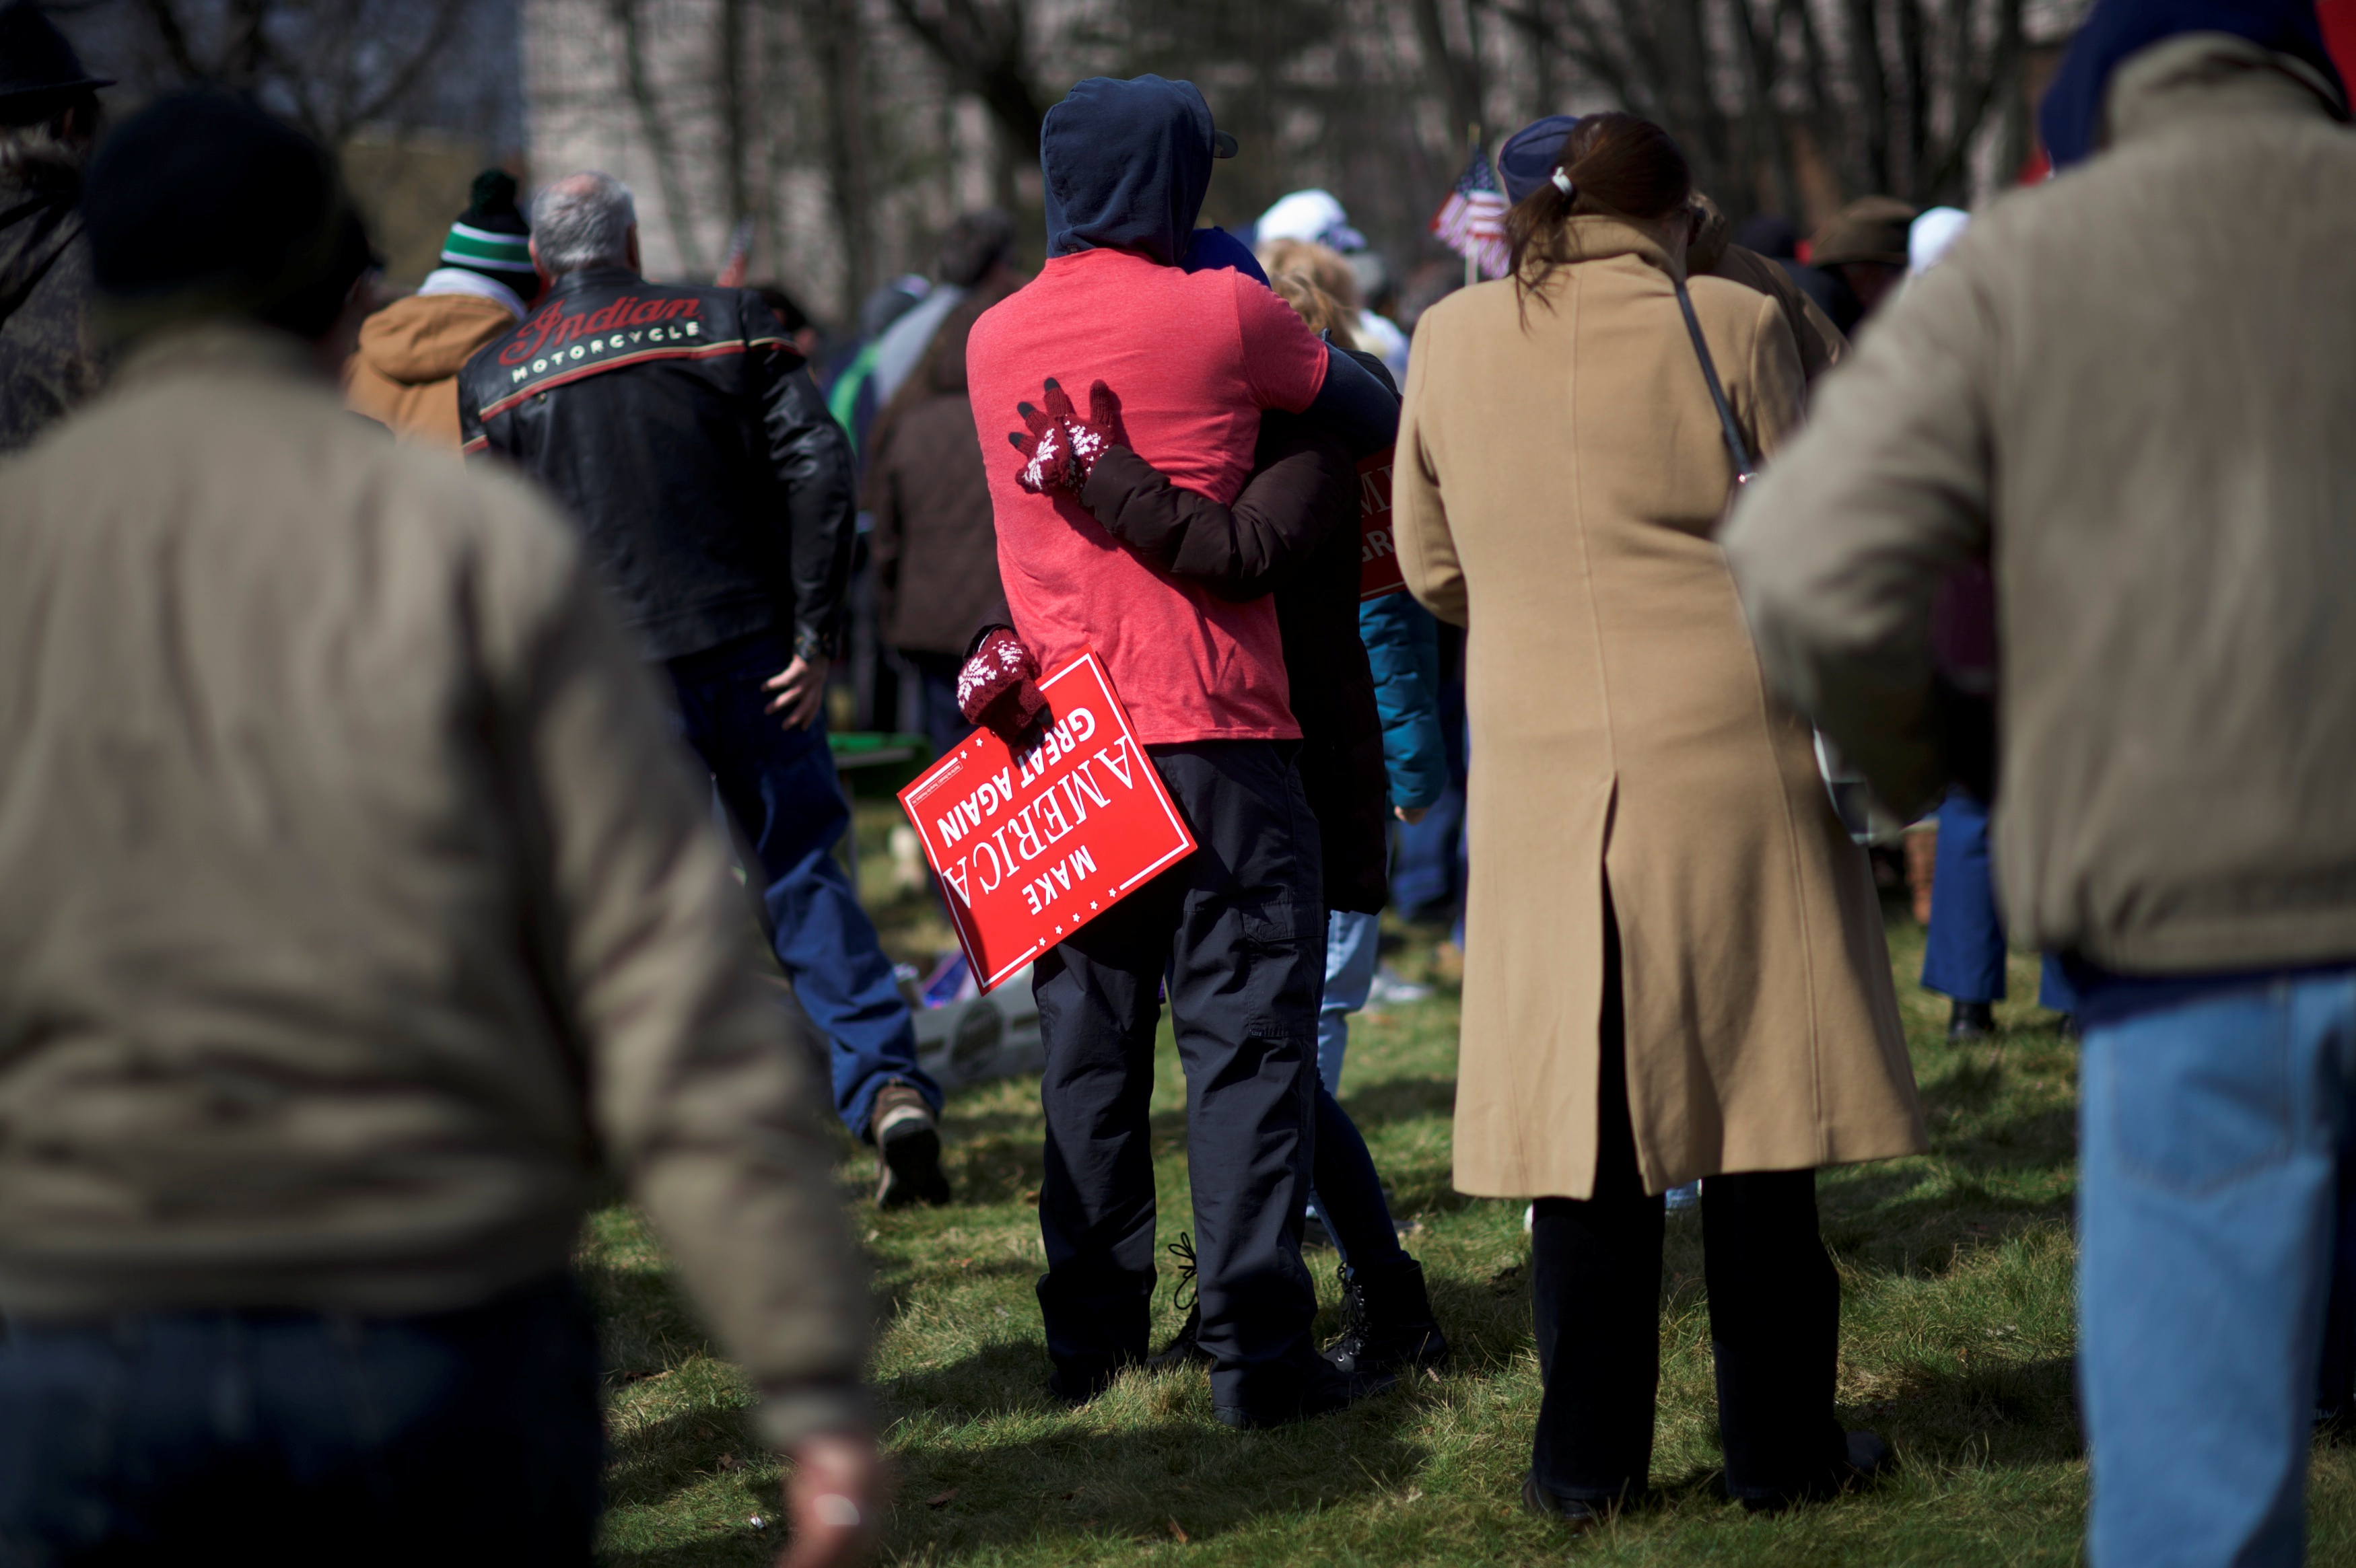 """Eric Falco, 32, embraces Alyssa Klingman, 23, while holding a """"Make America Great Again"""" sign during a """"People 4 Trump"""" rally at Neshaminy State Park in Bensalem"""